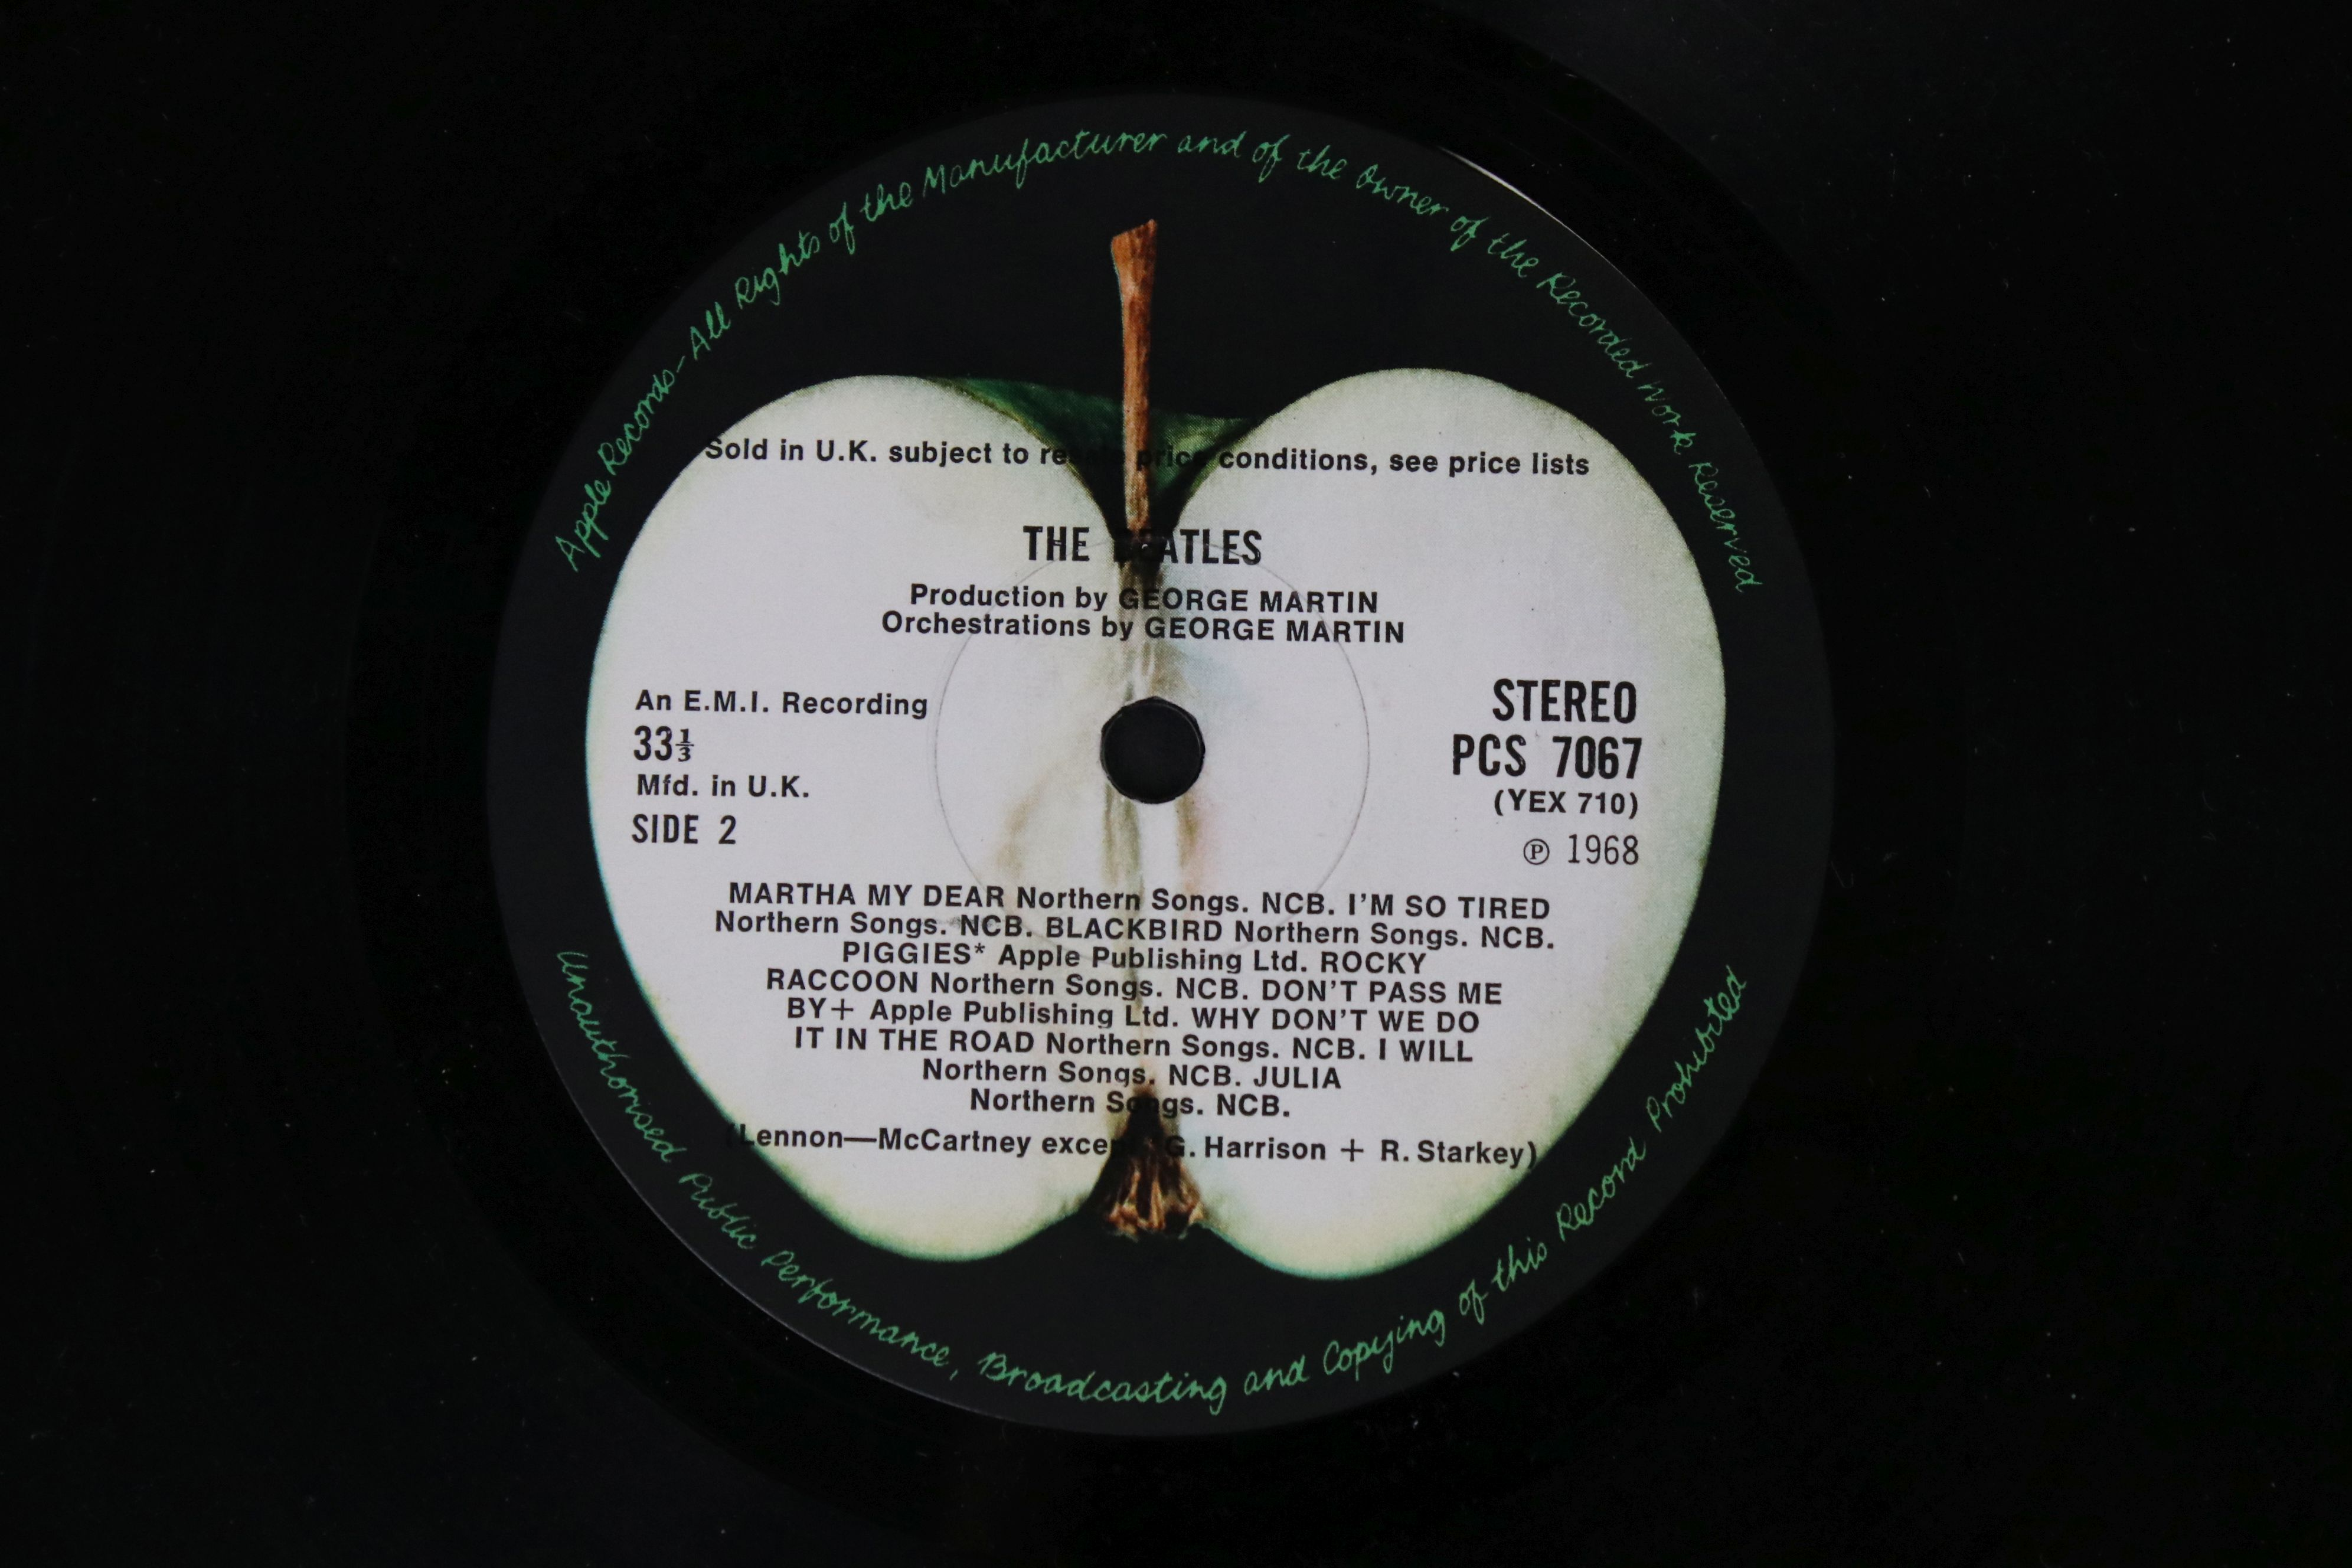 Vinyl - The Beatles White Album LP mono PMC7067-8, numbered 0001376 with 8 x coloured prints and - Image 3 of 10